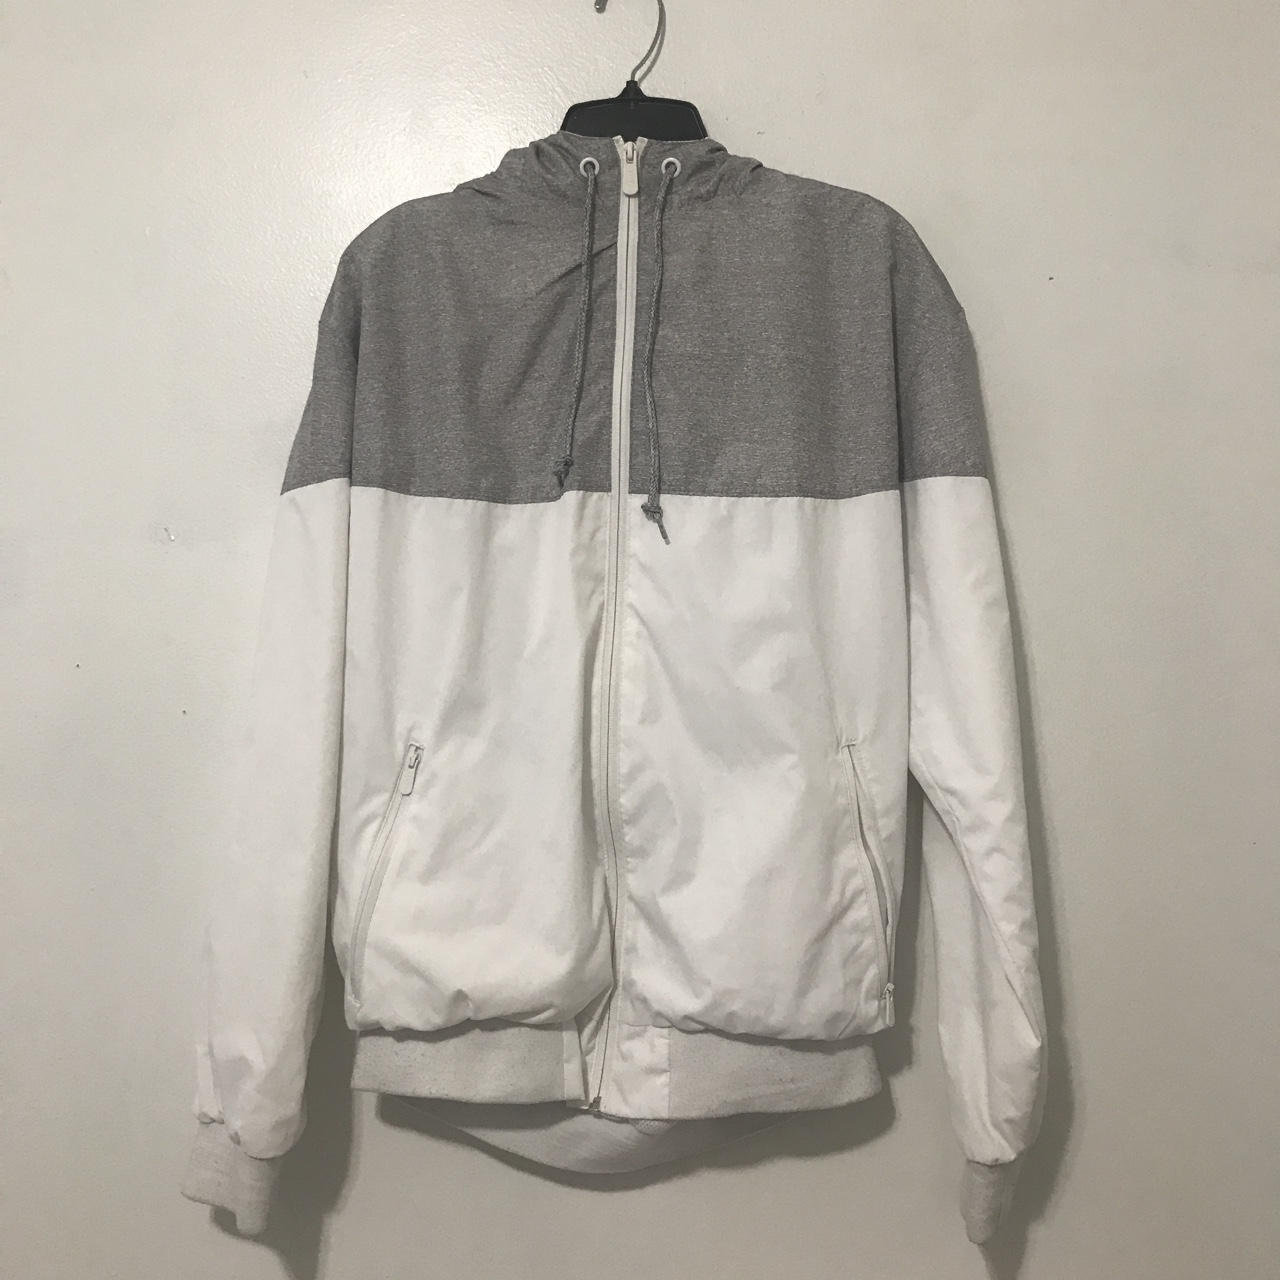 Windbreaker jacket from Champs Sports. Used(in good